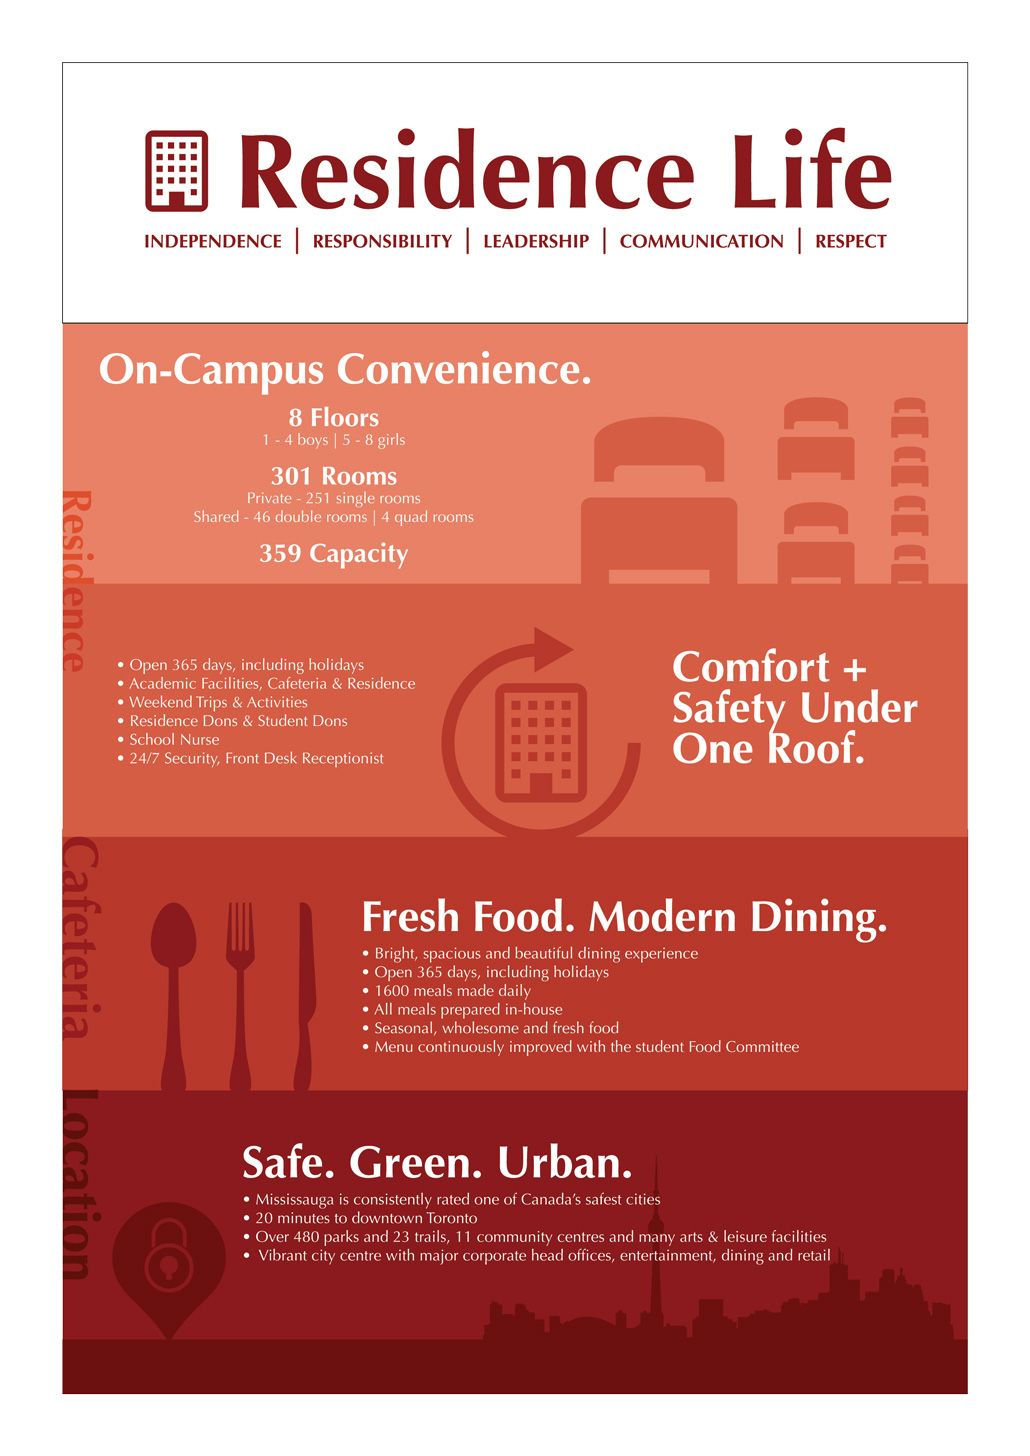 Residence life poster. Featuring comfort and safety. Fresh modern food. Safe, green and urban.